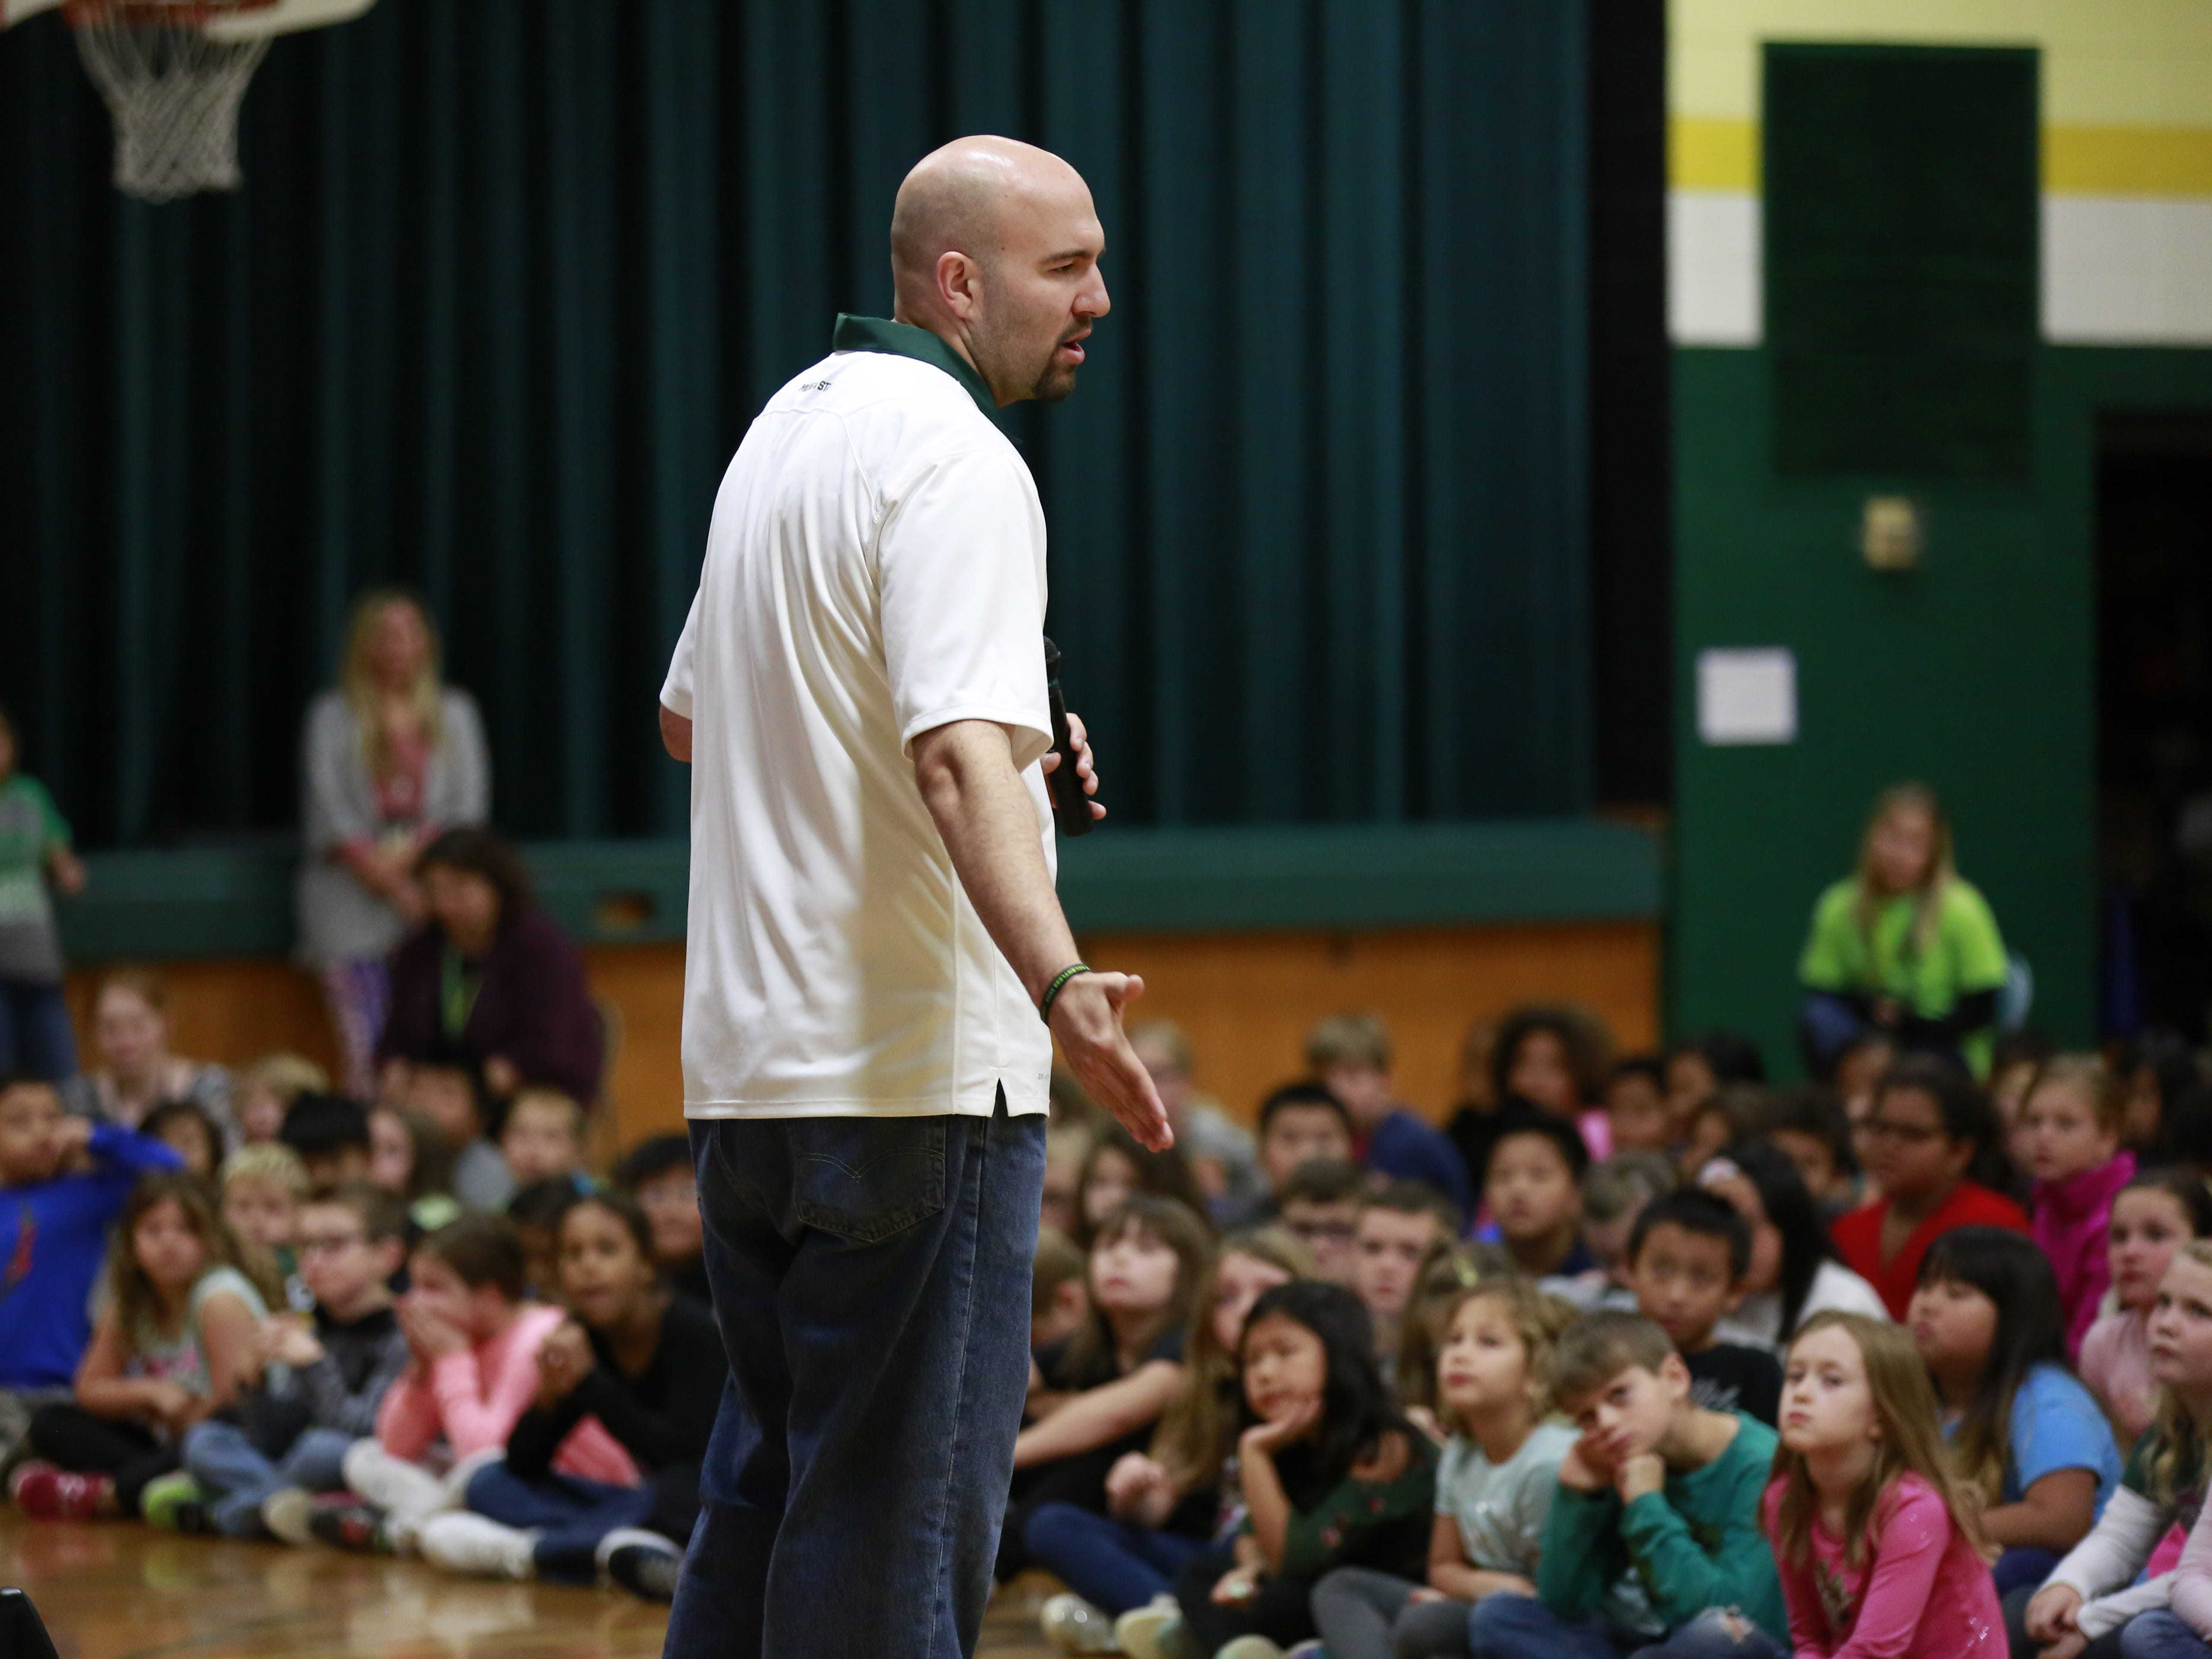 Former MSU basketball player Anthony Ianni speaks to students about bullying Monday, Oct. 15, 2018, as part of the Anti-Bullying Relentless Tour to Visit Wisconsin at Weston Elementary School in Weston, Wis.